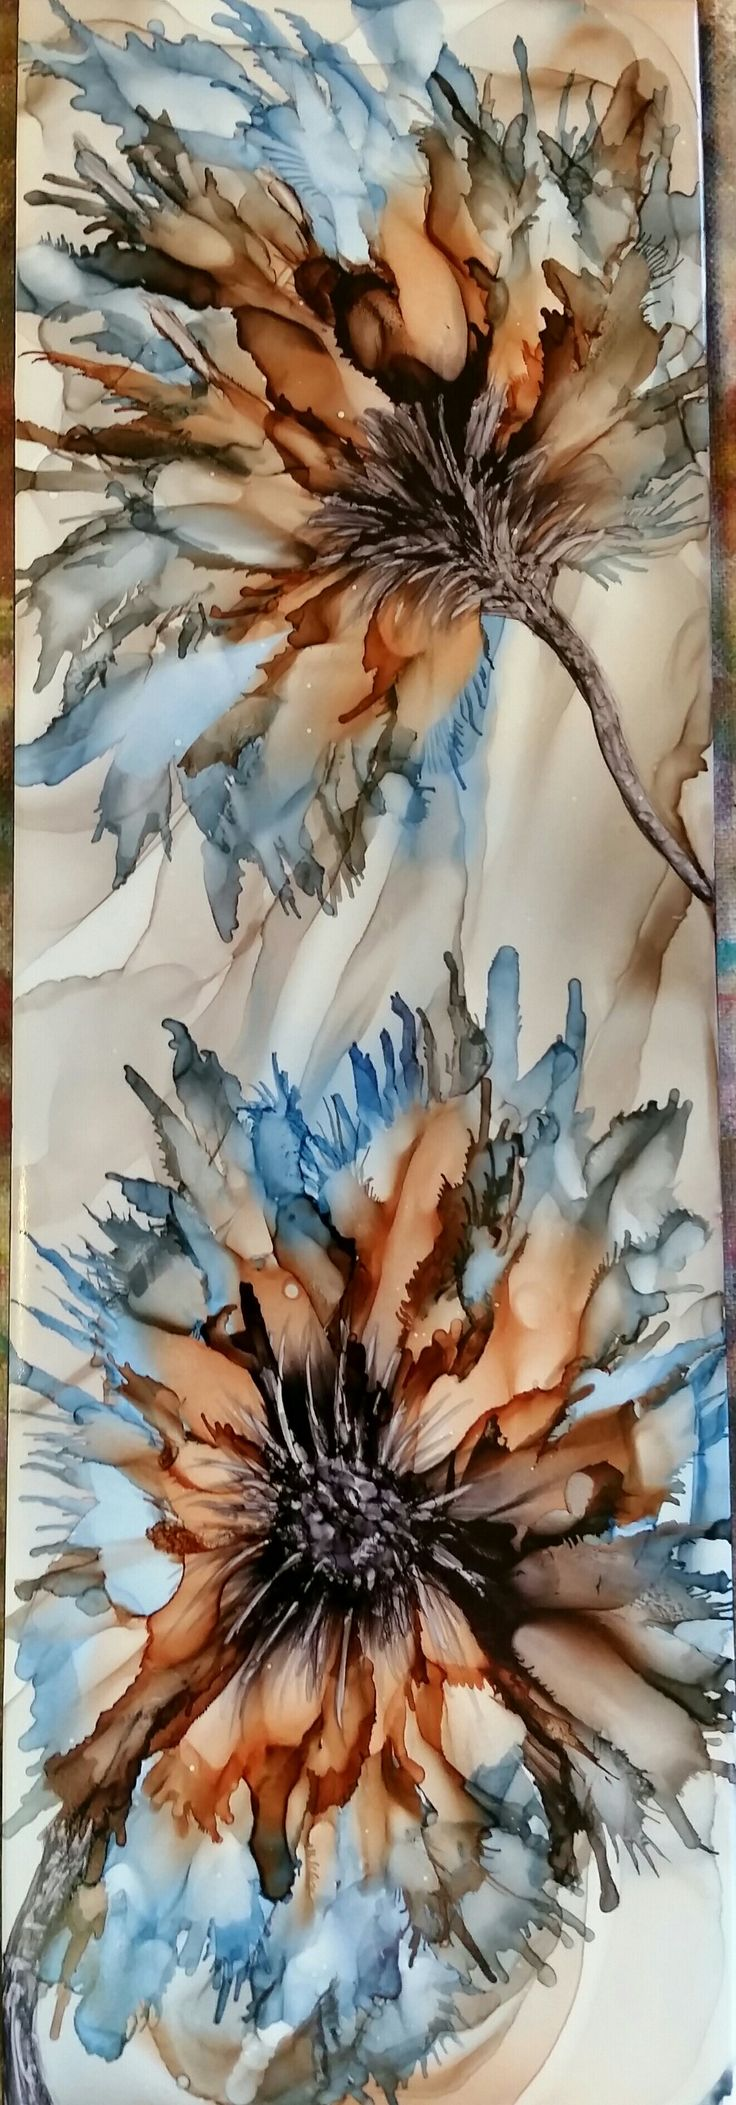 Flowers in alcohol ink on 12x4 ceramic tile by Tina